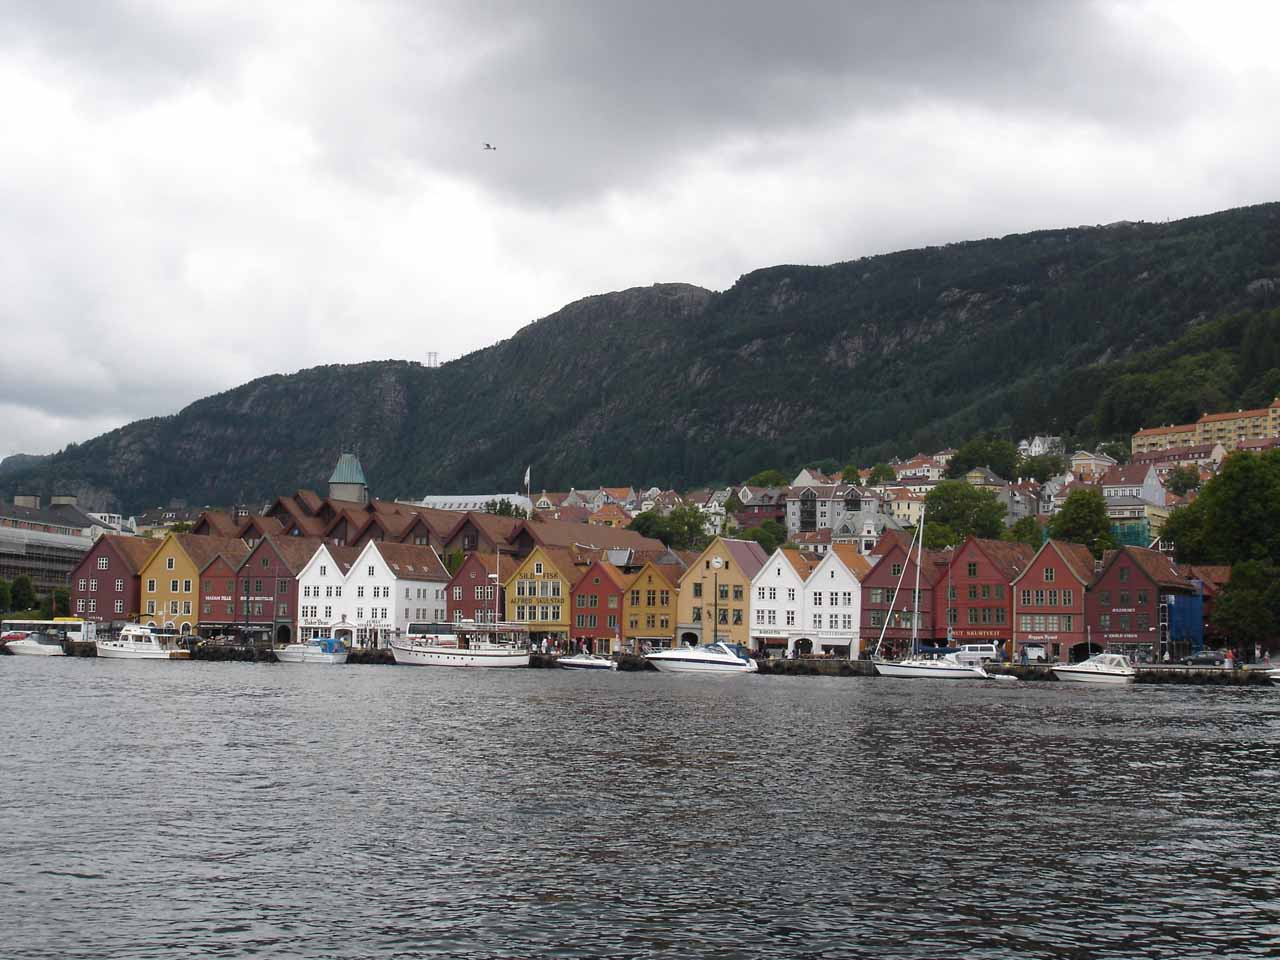 Tvindefossen was just north of Voss, but the city was on a well-traveled route to the northeast of the charming city of Bergen (roughly 90 minutes drive away from Voss)